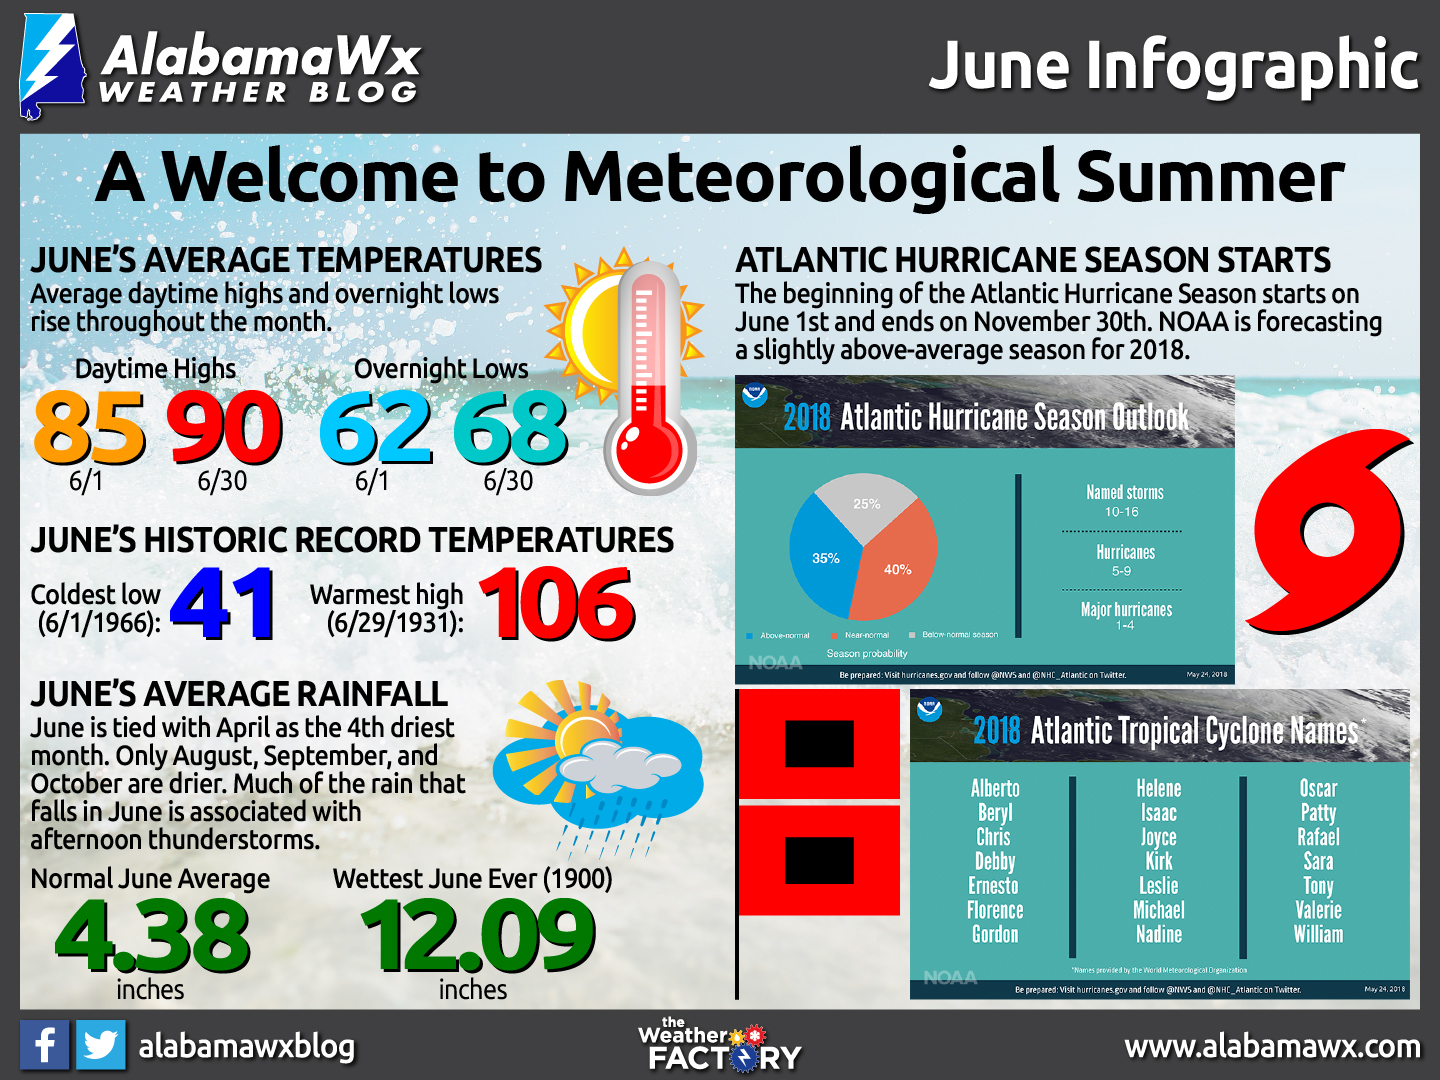 June Infographic by AlabamaWx's Scott Martin